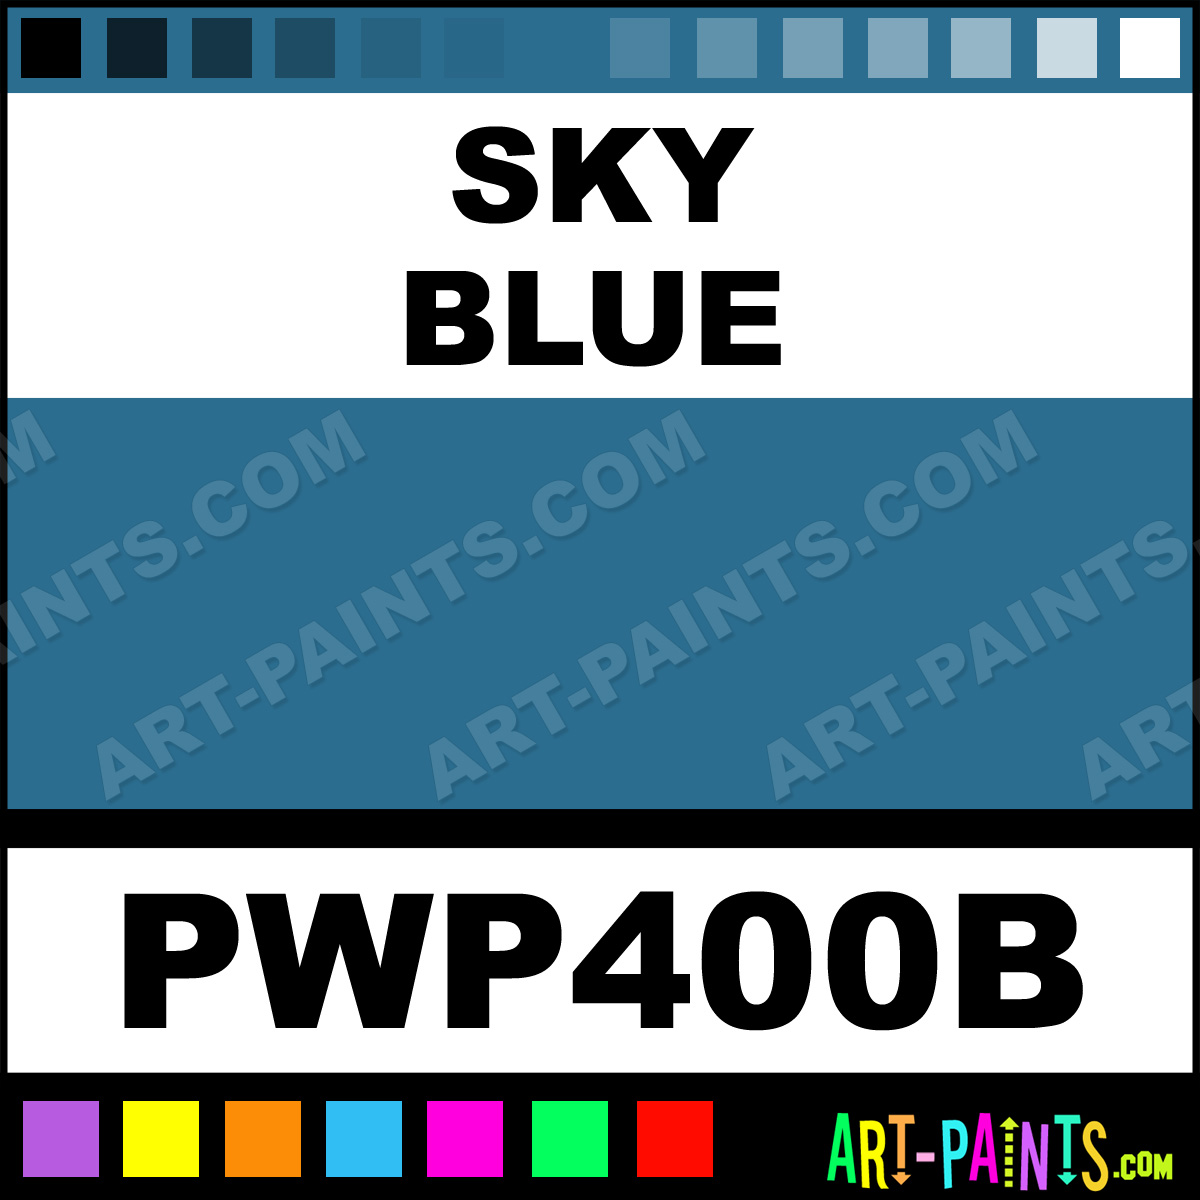 sky blue candy metal paints and metallic paints pwp400b. Black Bedroom Furniture Sets. Home Design Ideas